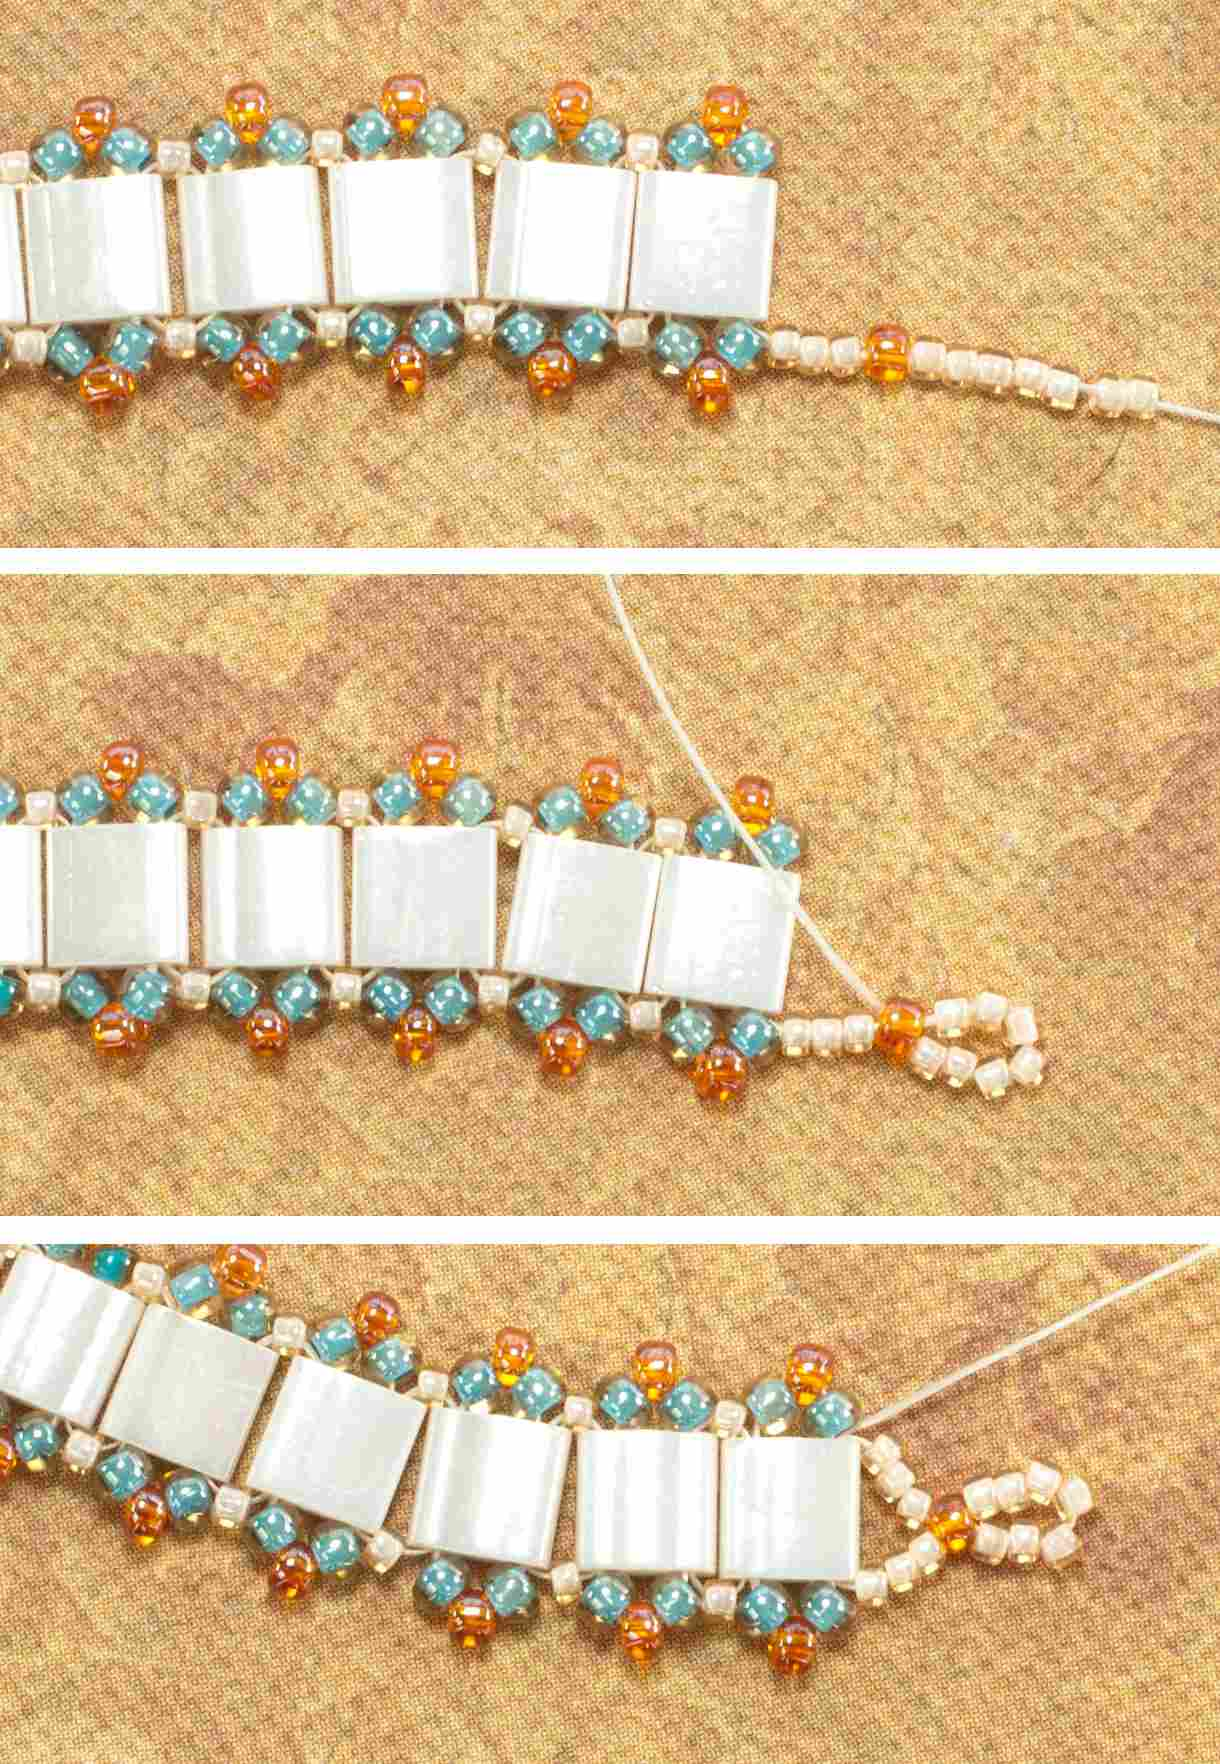 with netting beaded michaels bracelet turquoise beads a pin the tila horizontal picot completed pattern clasp edges sand